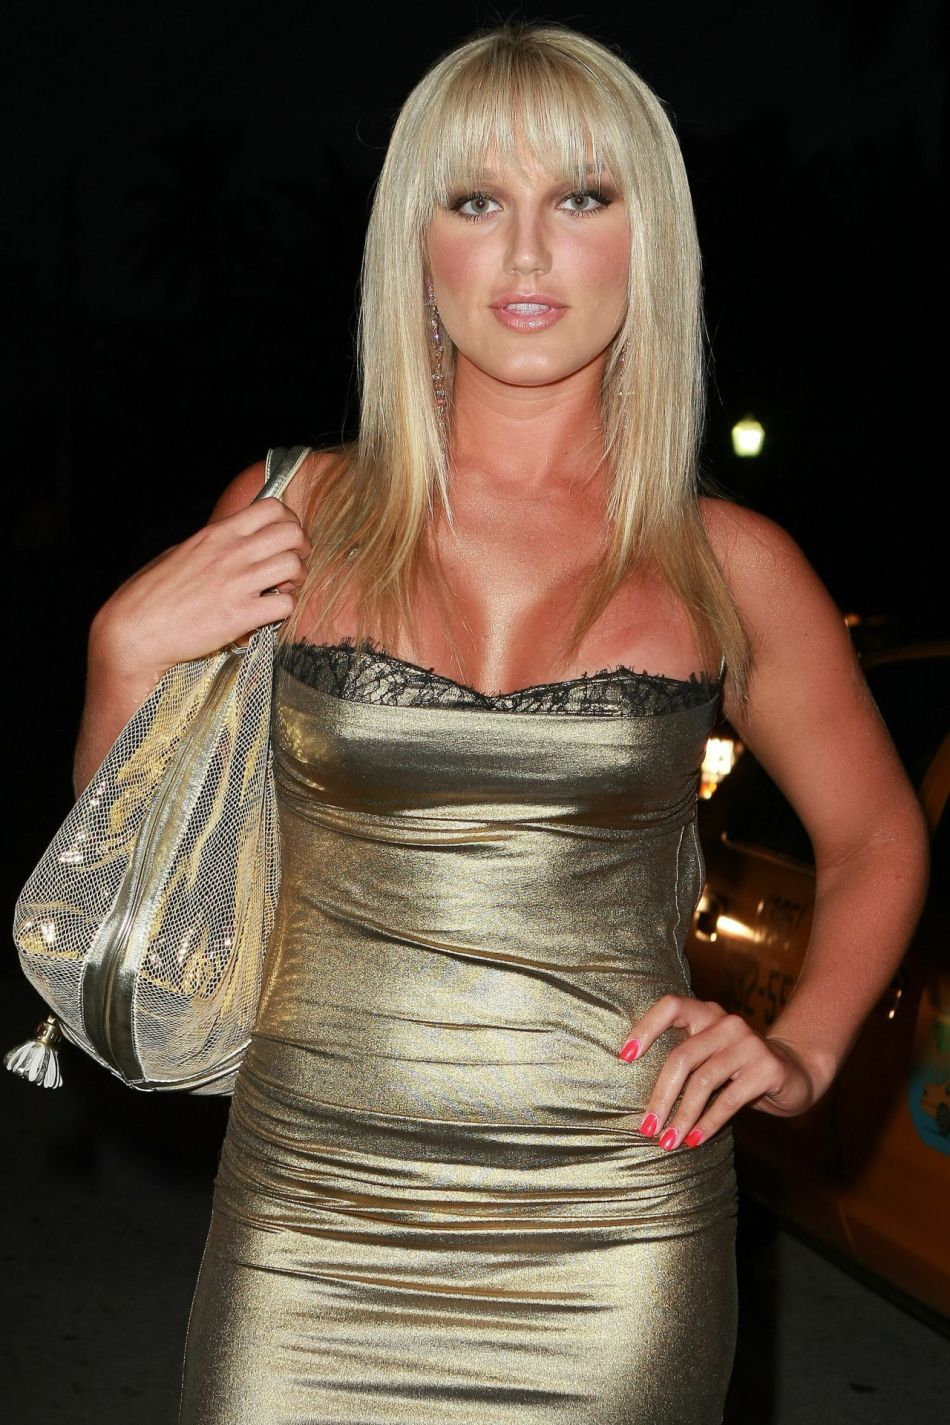 Brooke Hogan photo, pics, wallpaper - photo #212822